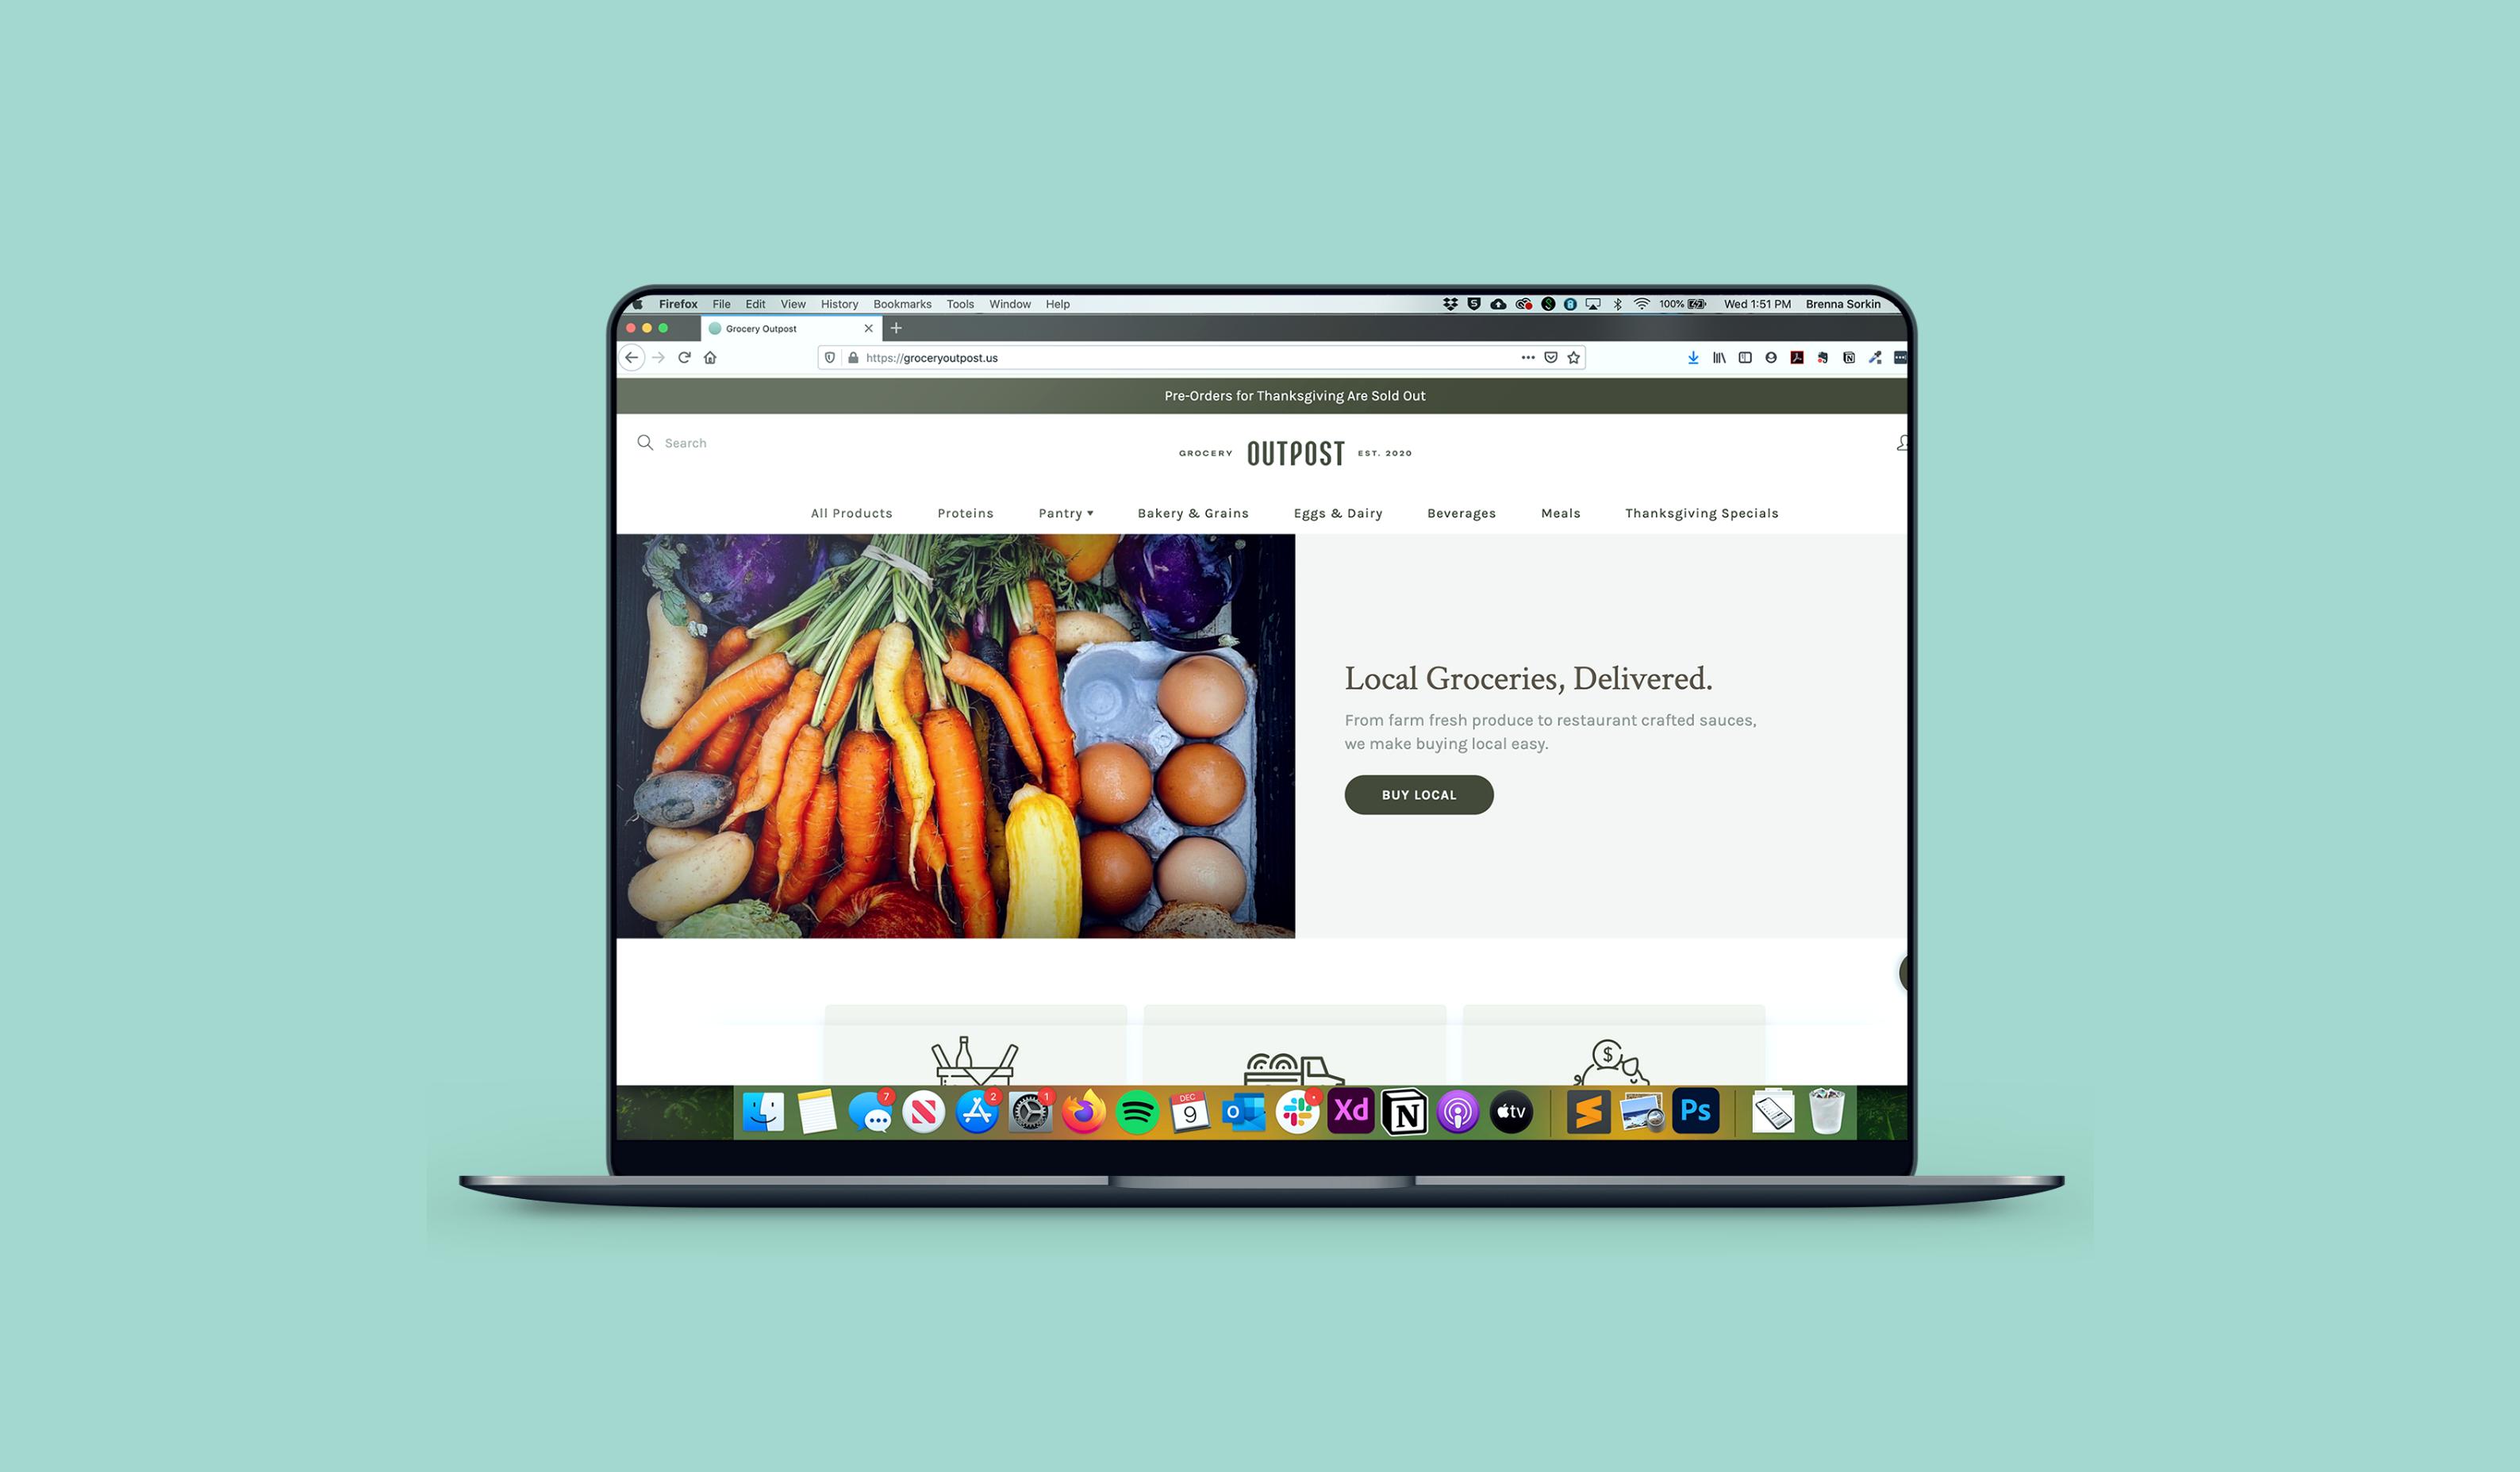 The Grocery Outpost website on a laptop screen